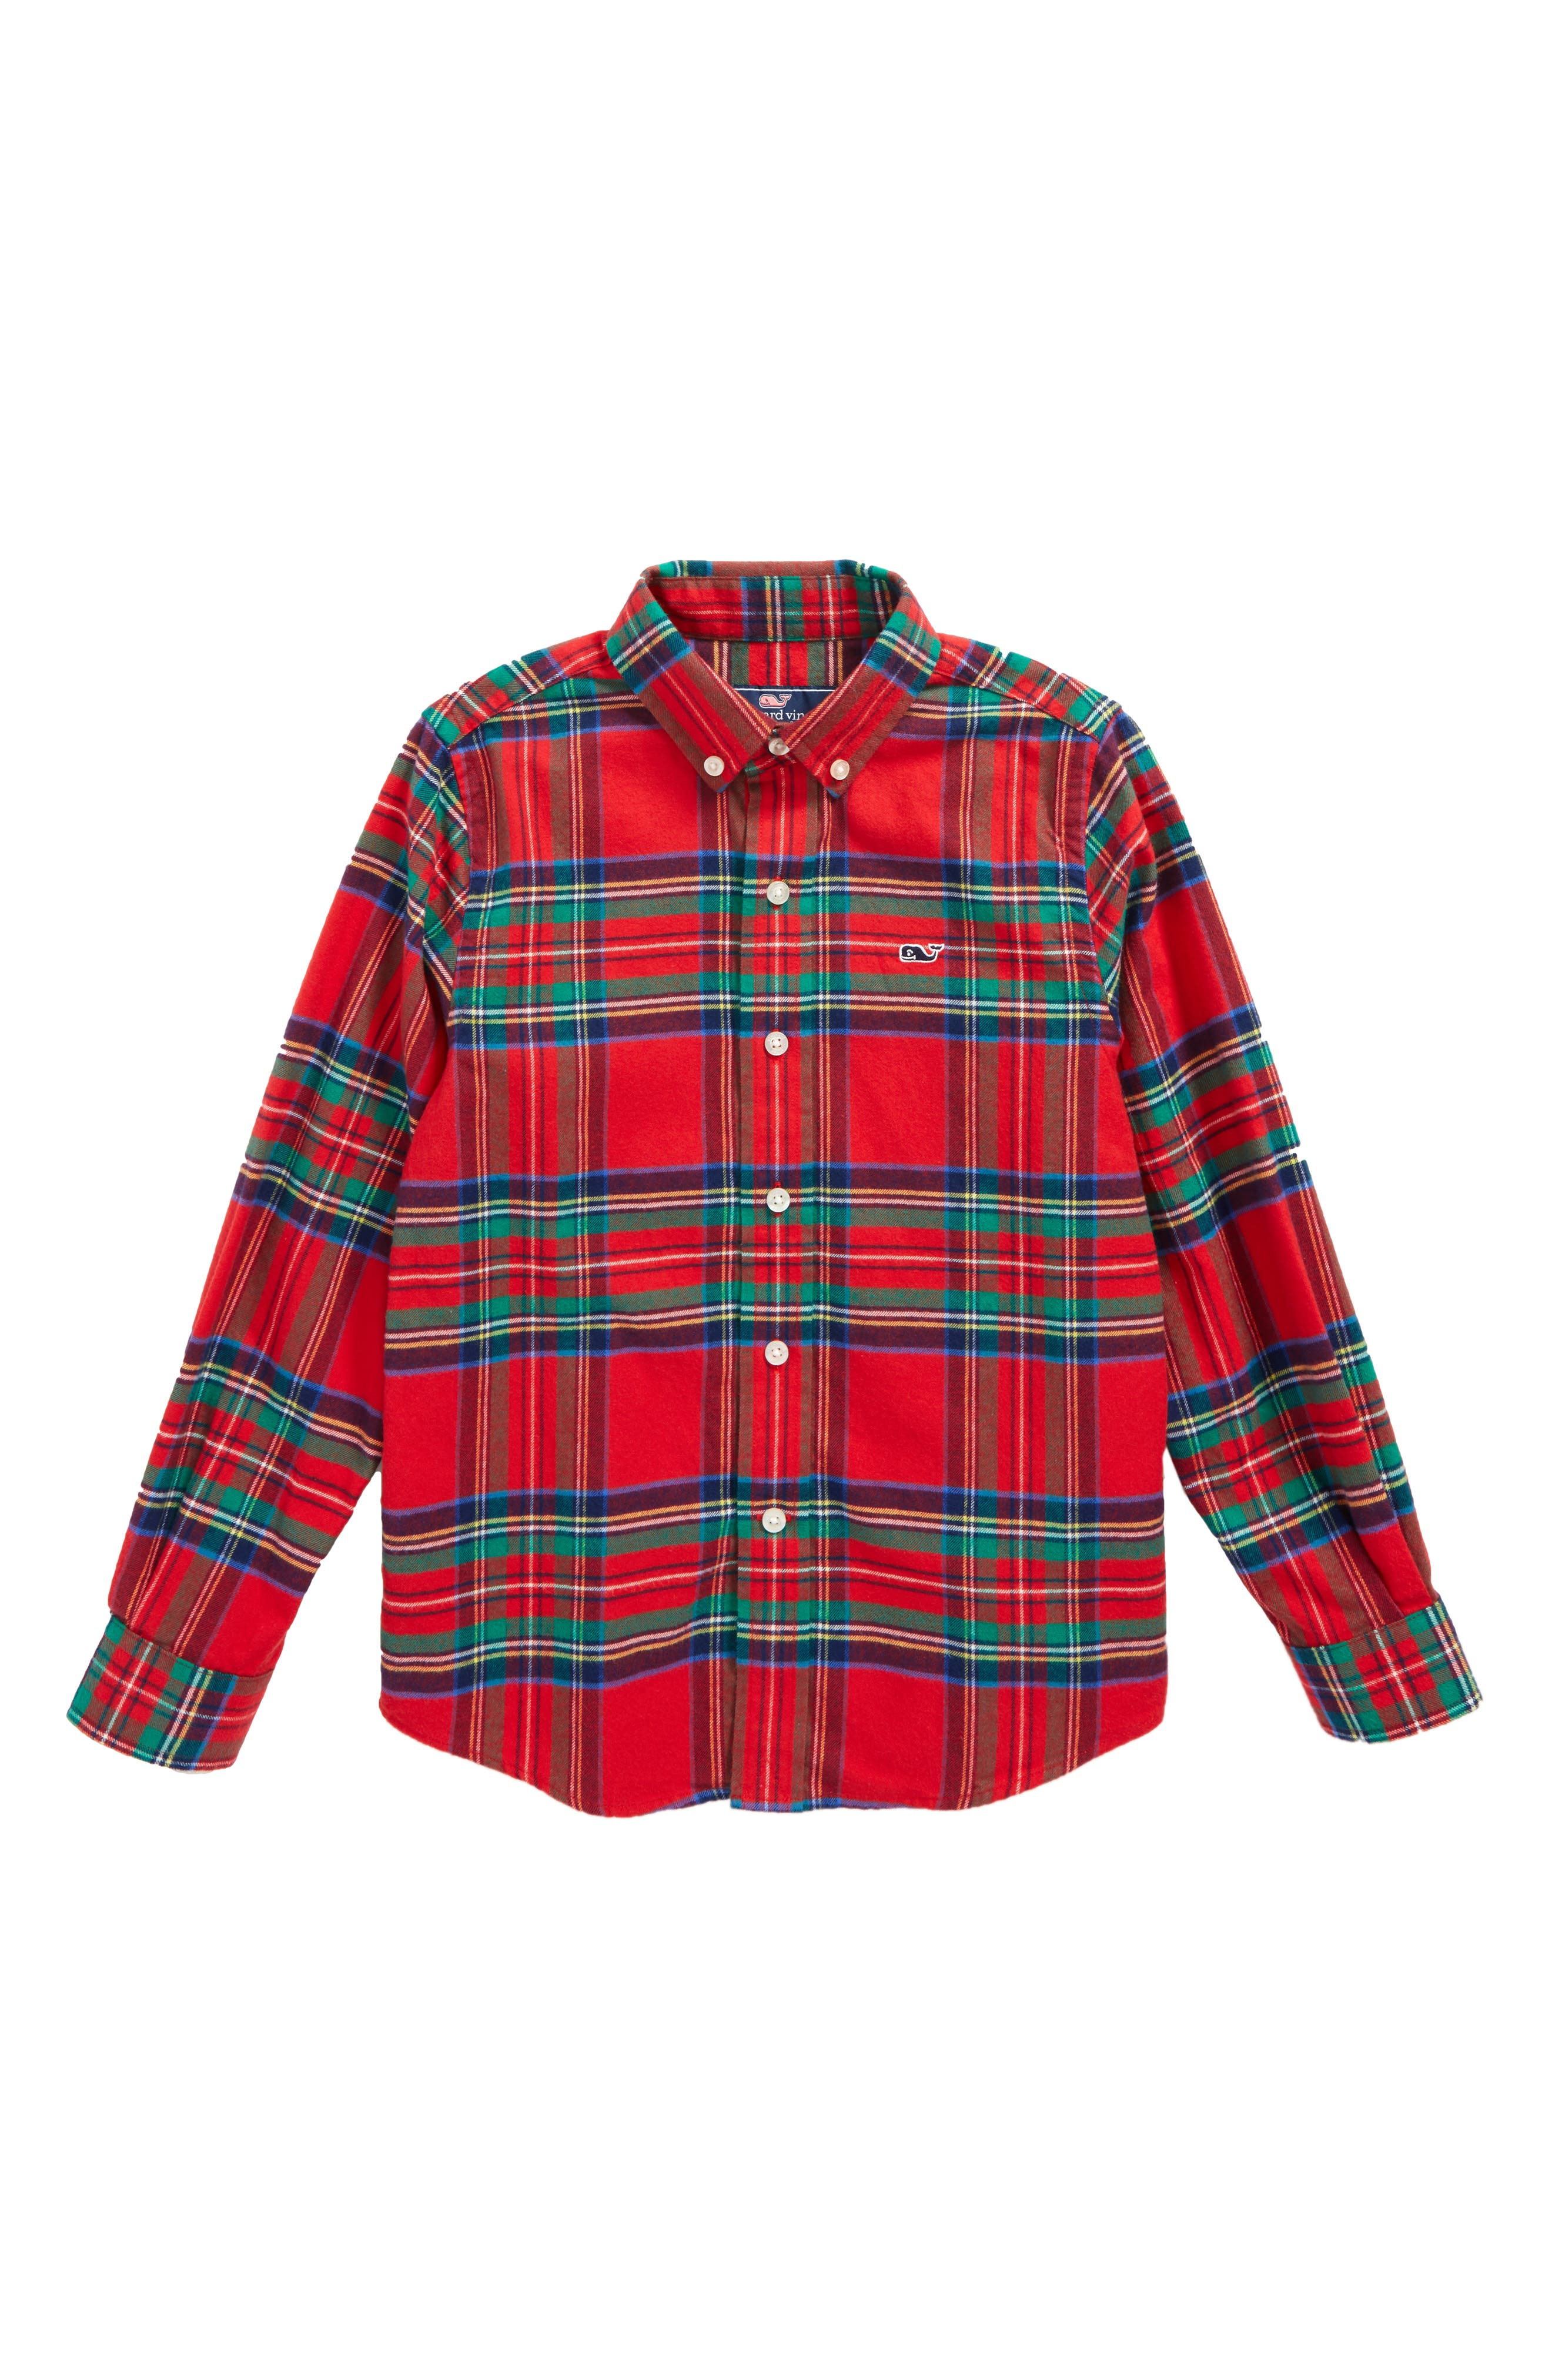 Jolly Plaid Whale Flannel Shirt,                             Main thumbnail 1, color,                             Lighthouse Red